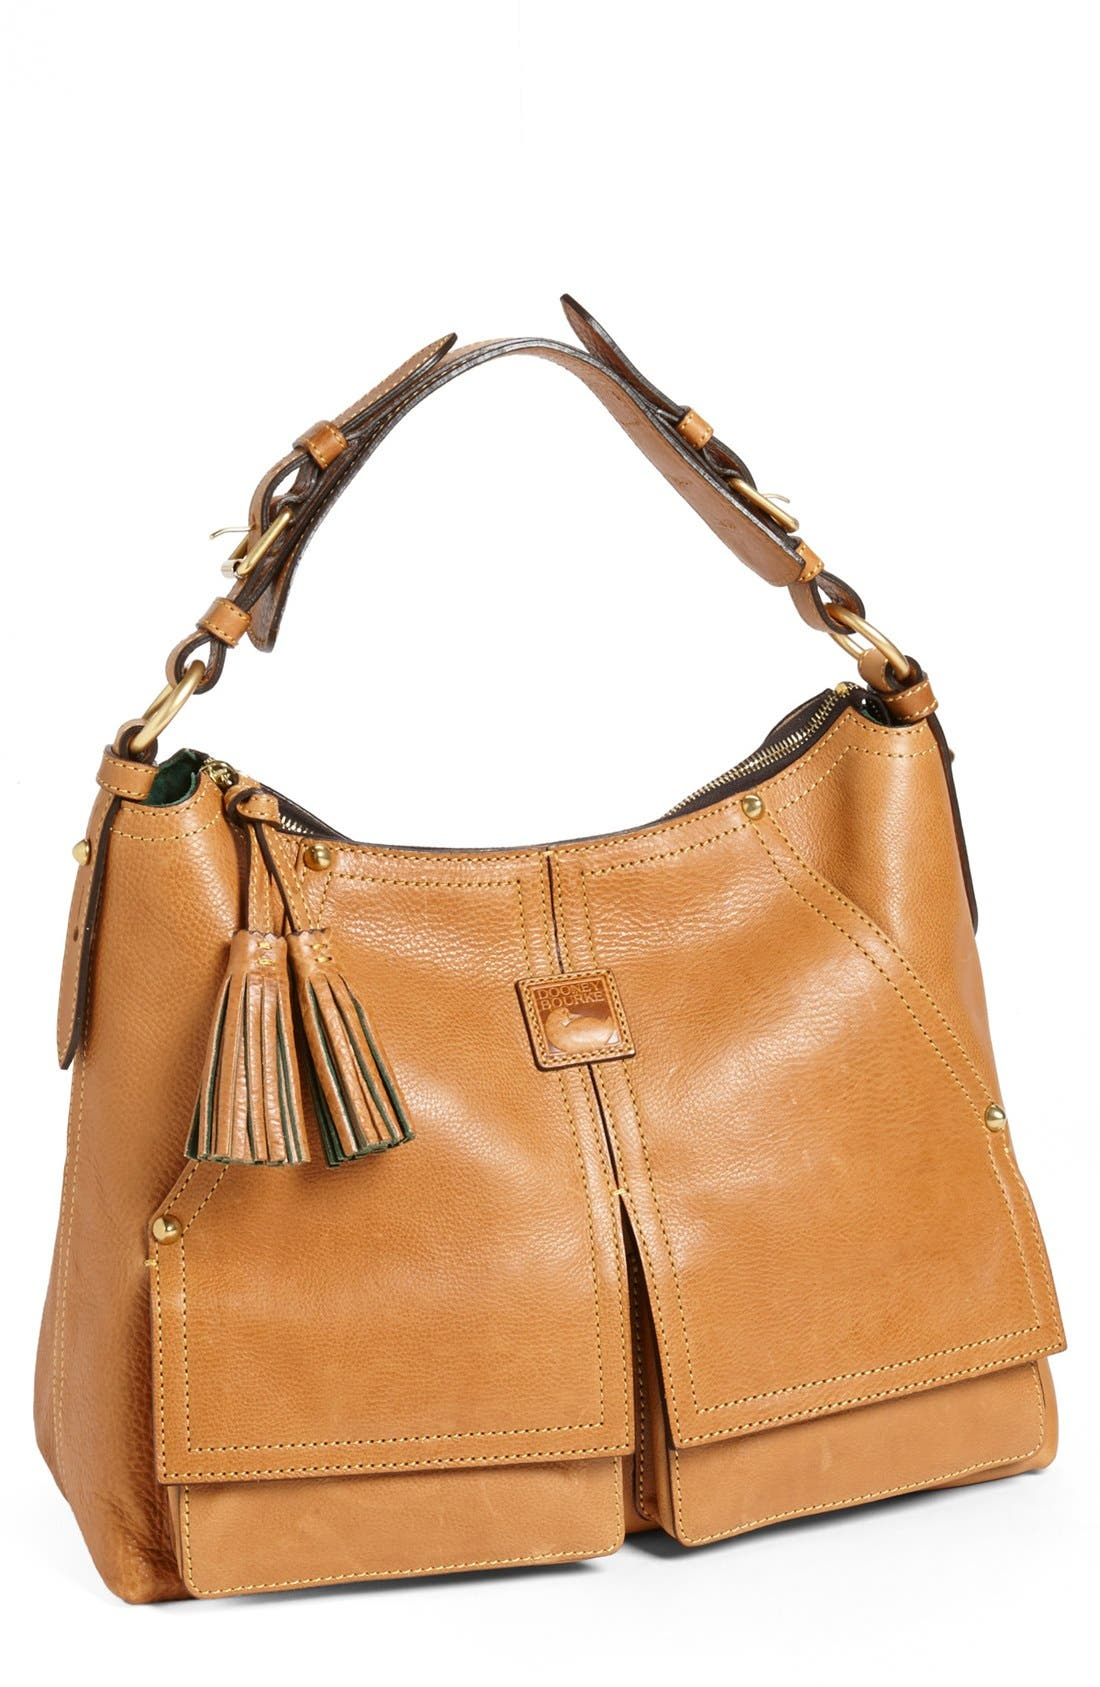 Alternate Image 1 Selected - Dooney & Bourke 'Kingston' Hobo